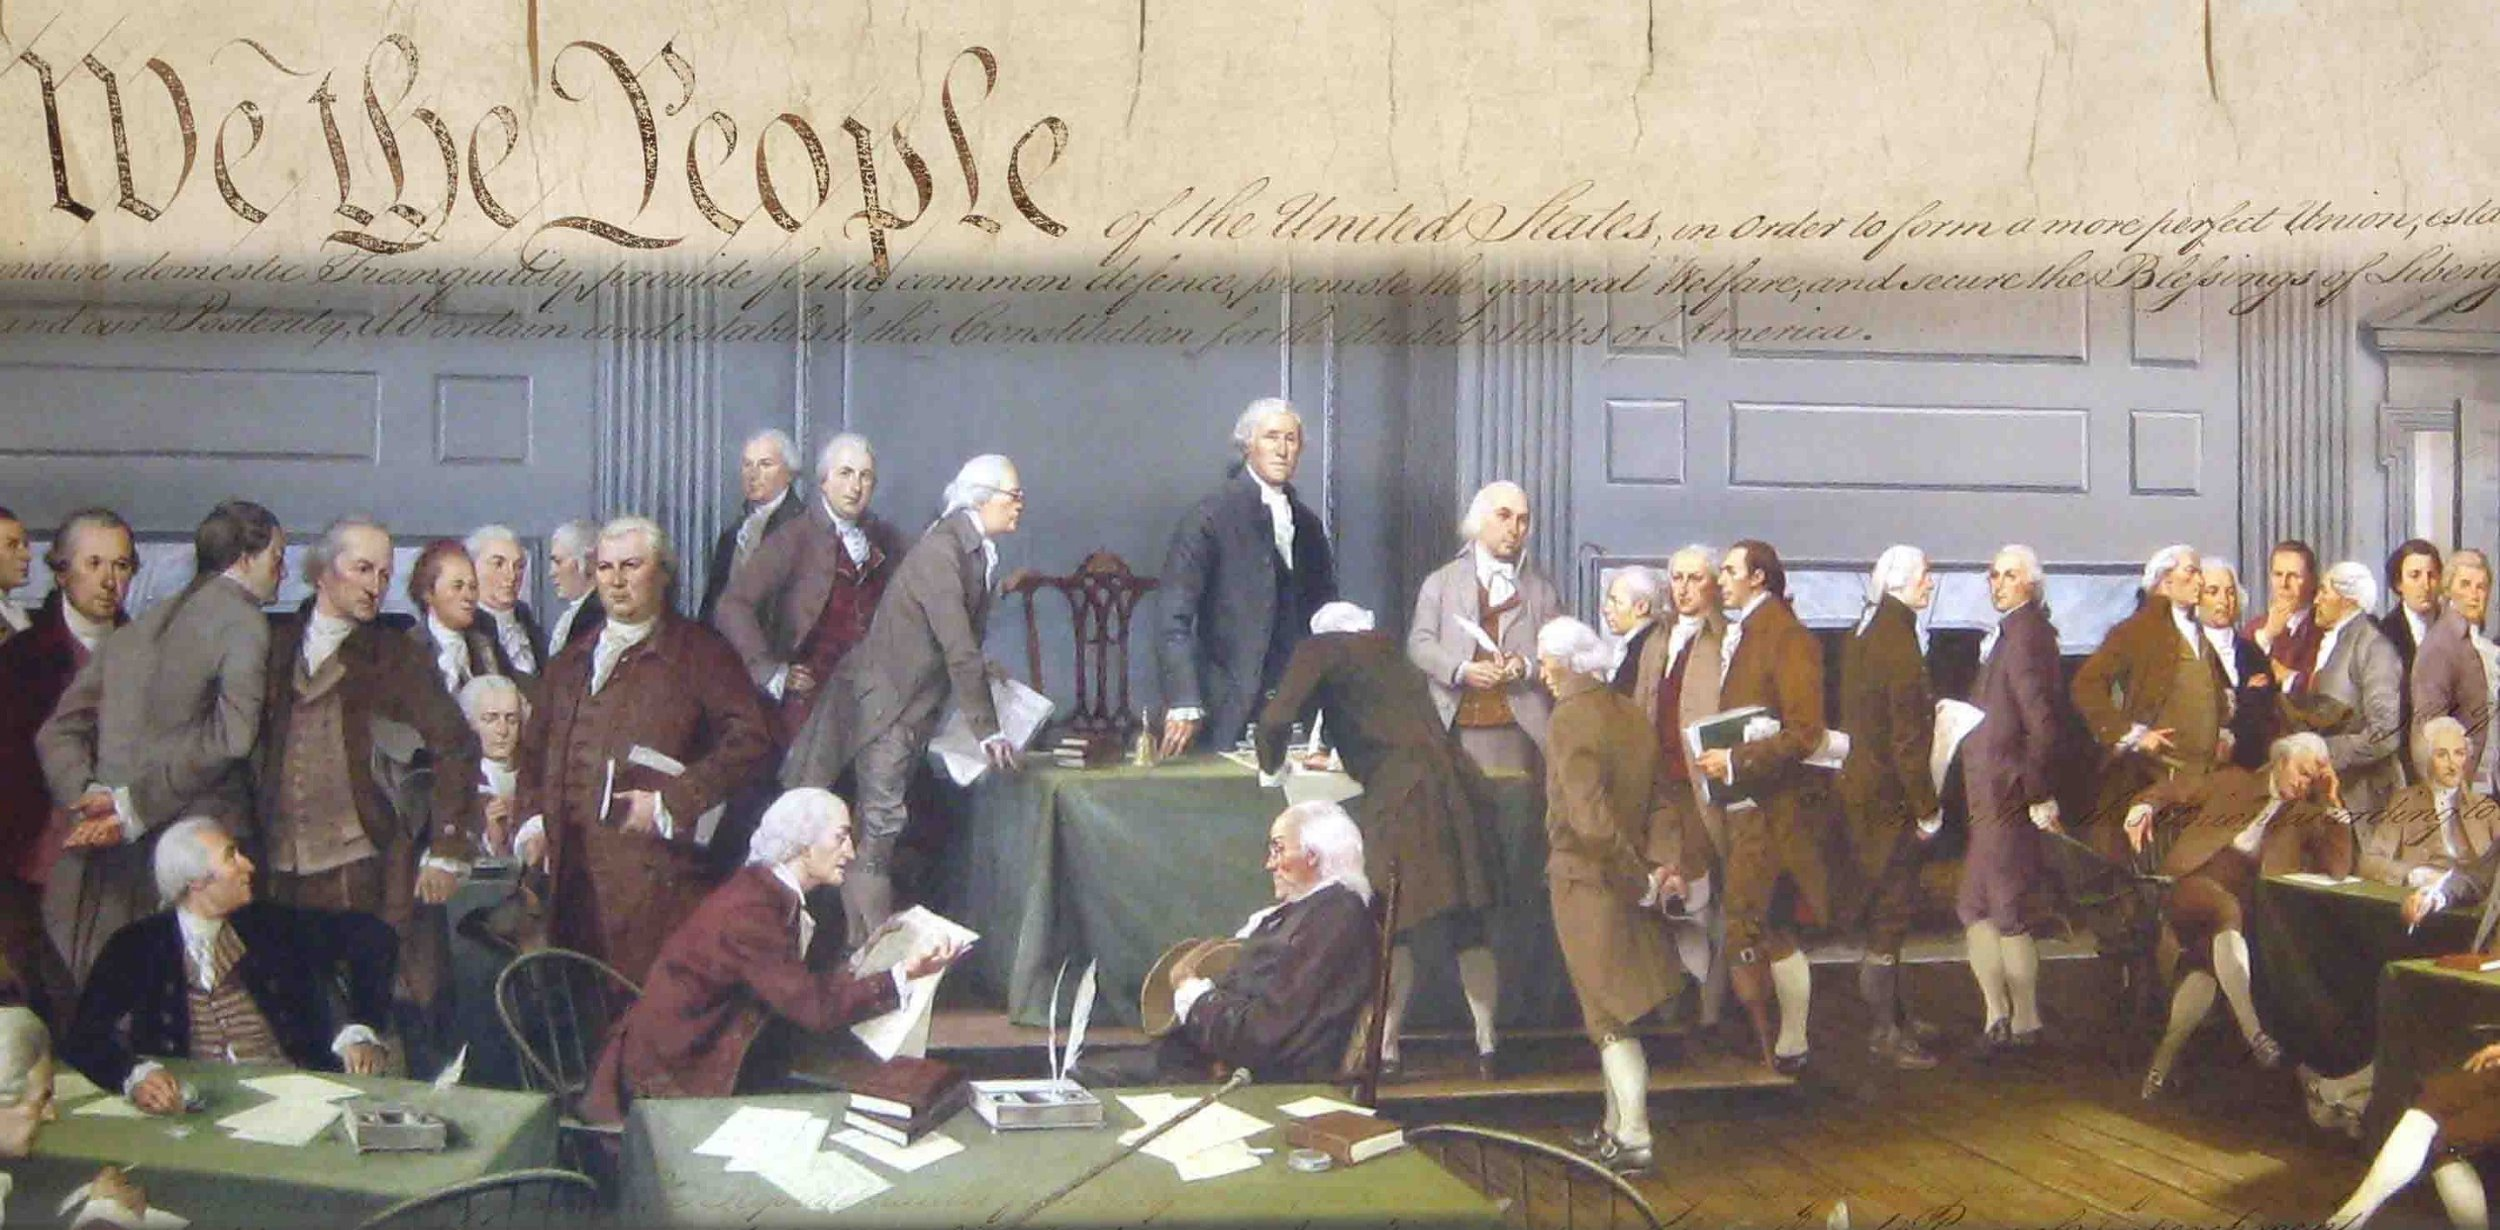 The founding fathers team produced the Declaration of Independence